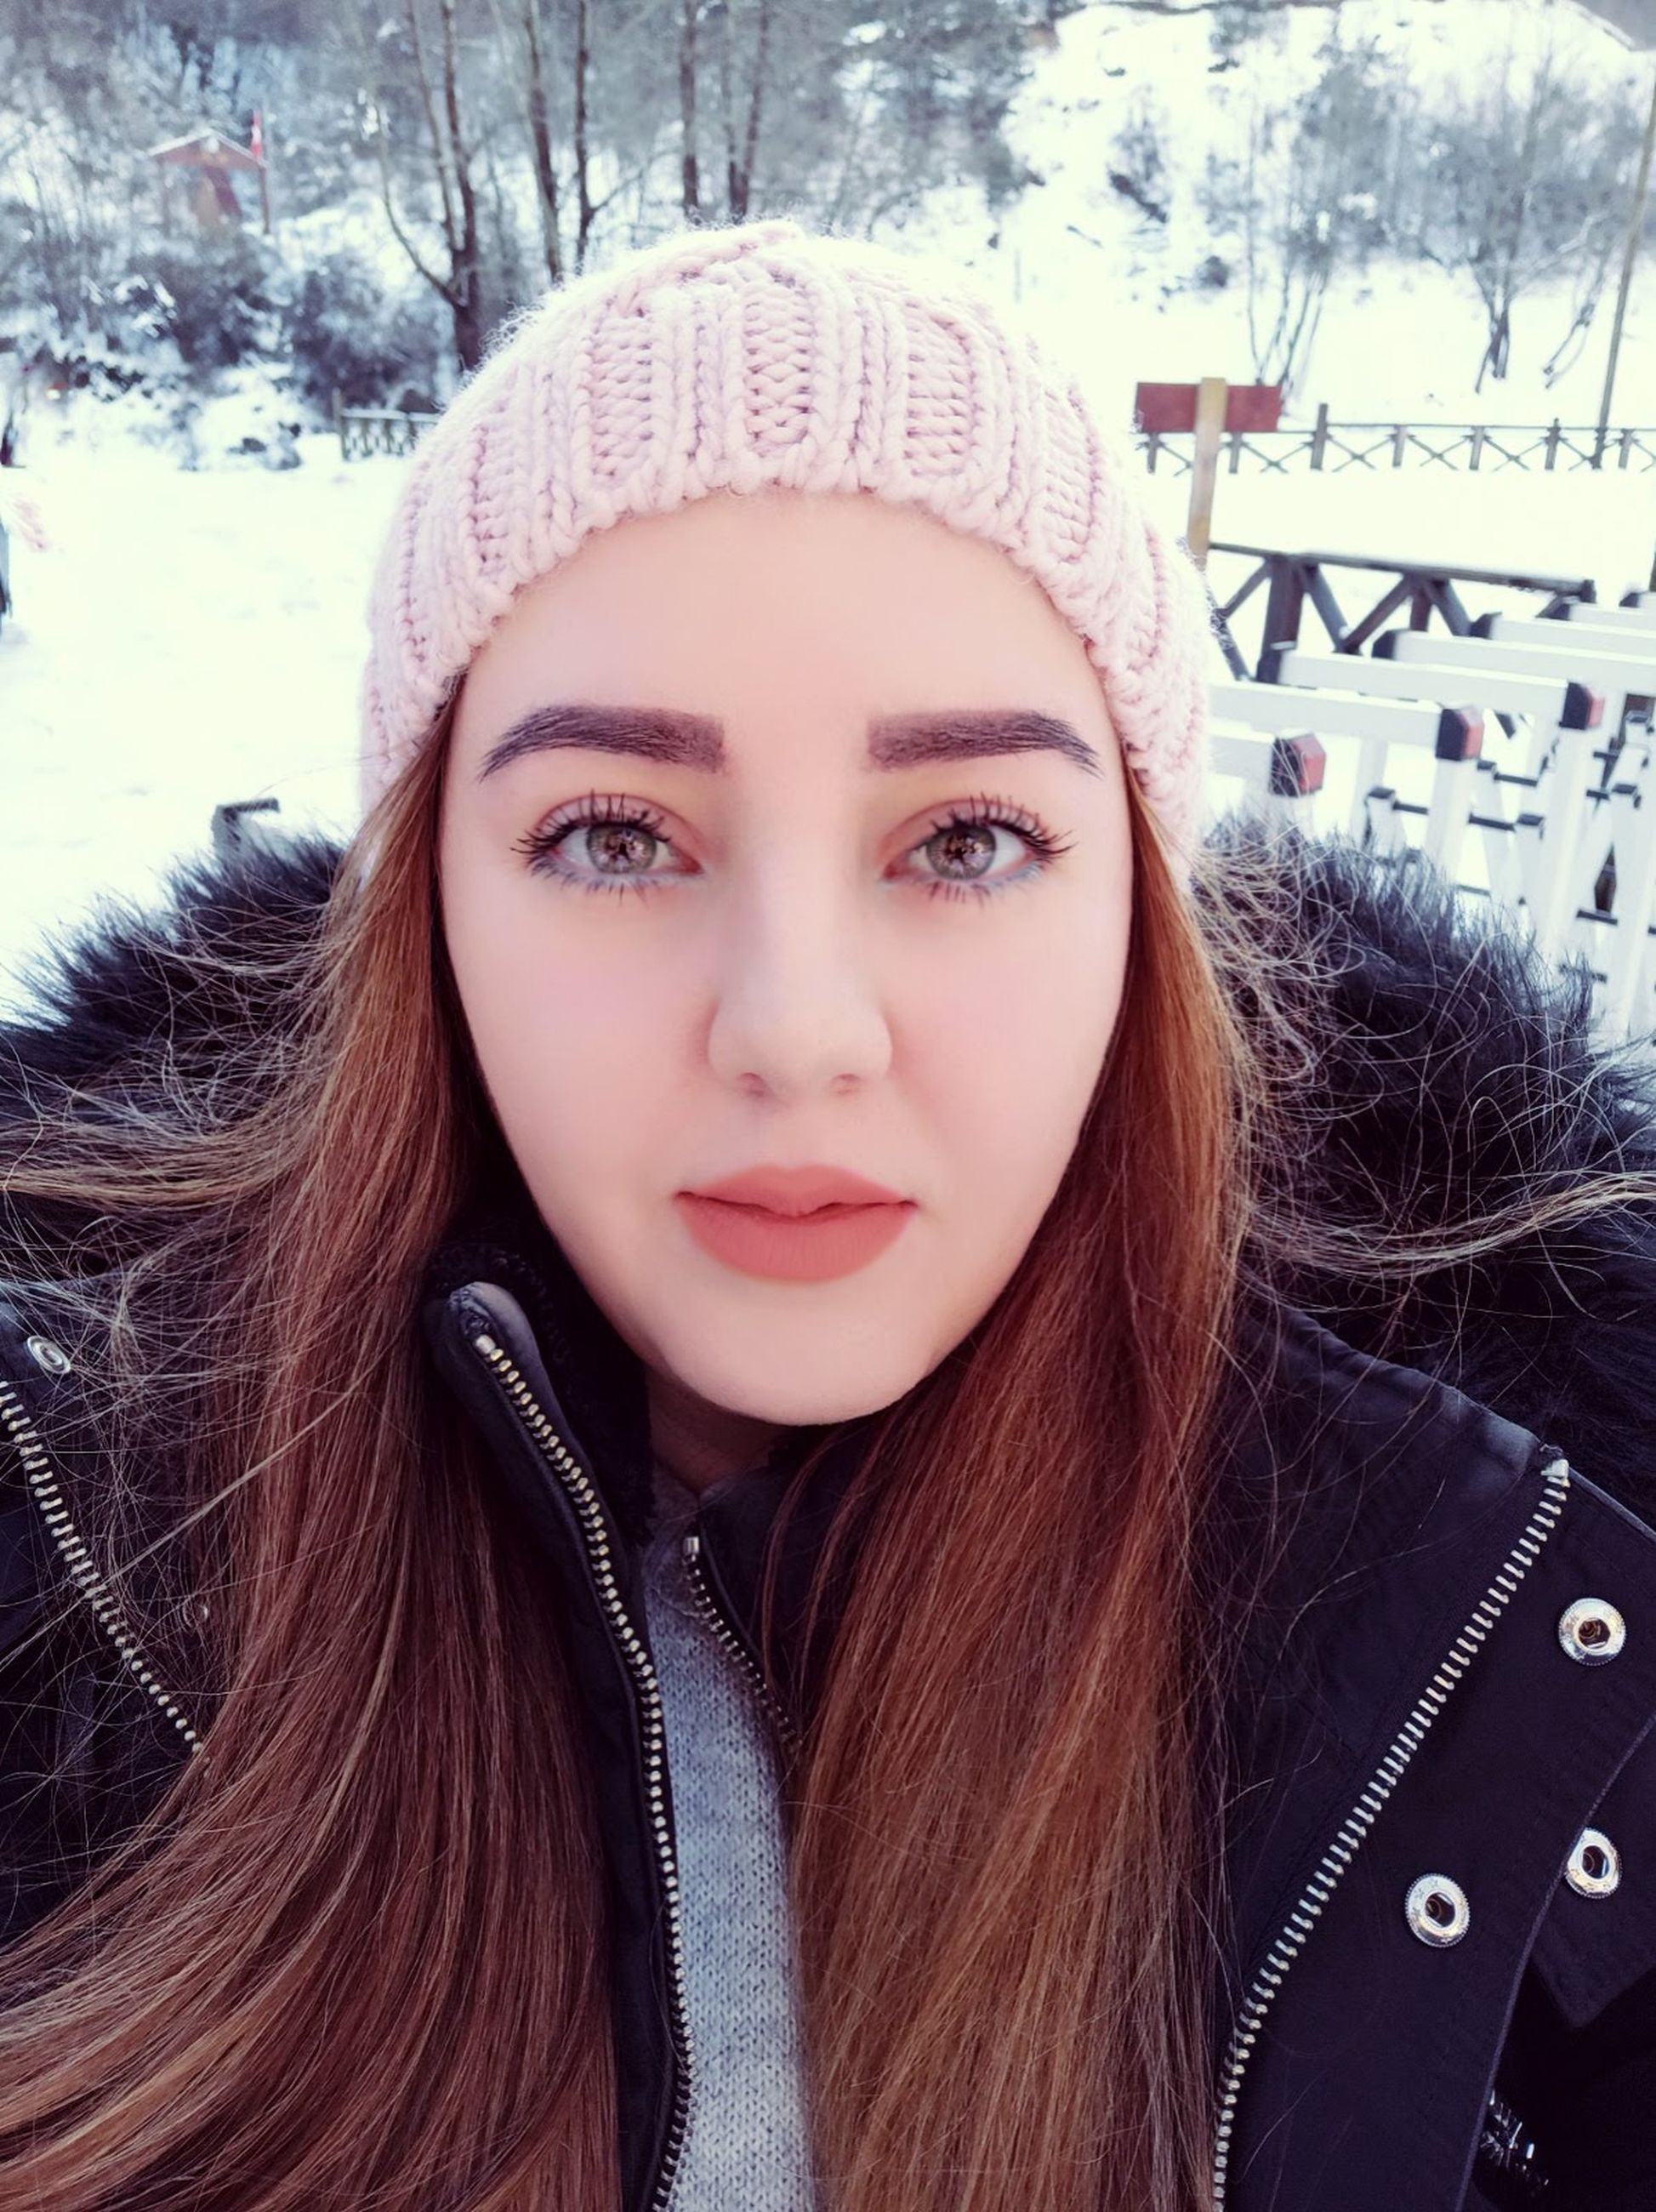 winter, portrait, one person, cold temperature, snow, warm clothing, clothing, front view, young adult, looking at camera, women, headshot, long hair, human hair, hairstyle, adult, hat, leisure activity, fashion, lifestyles, human face, knit hat, person, cap, day, brown hair, nature, knit cap, human head, close-up, beanie, outdoors, child, photo shoot, jacket, teenager, winter coat, fur, tree, human eye, coat, skin